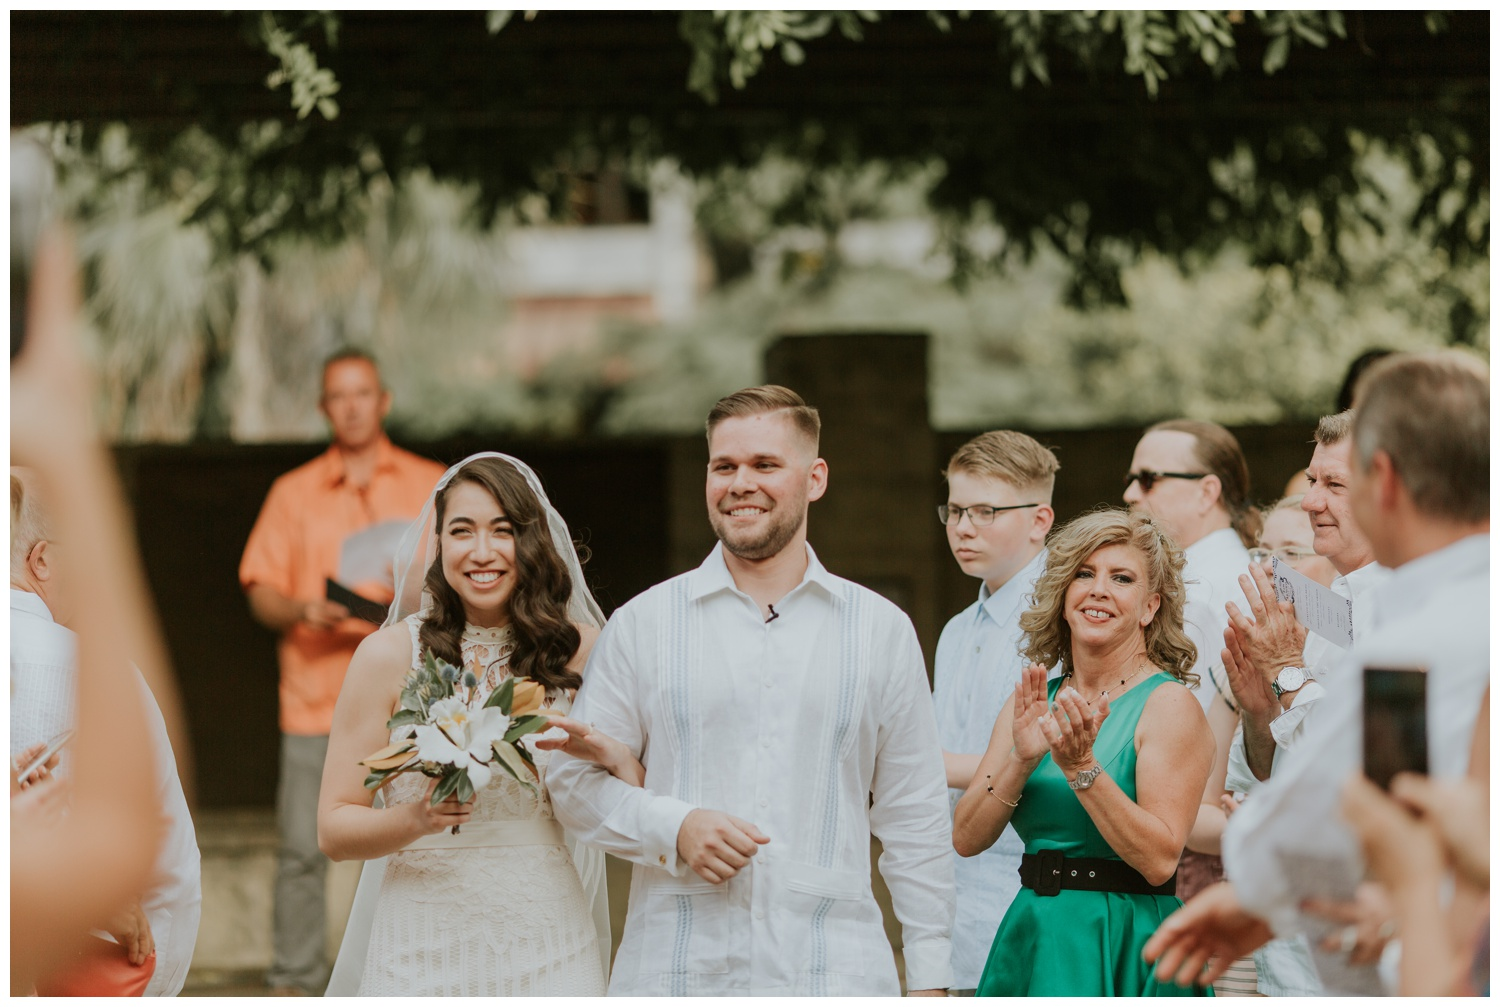 Ana + Sean || Jack Guenther Pavilion at the Briscoe Wedding San Antonio, Texas (Joshua and Parisa – Contista Productions)_0071.jpg